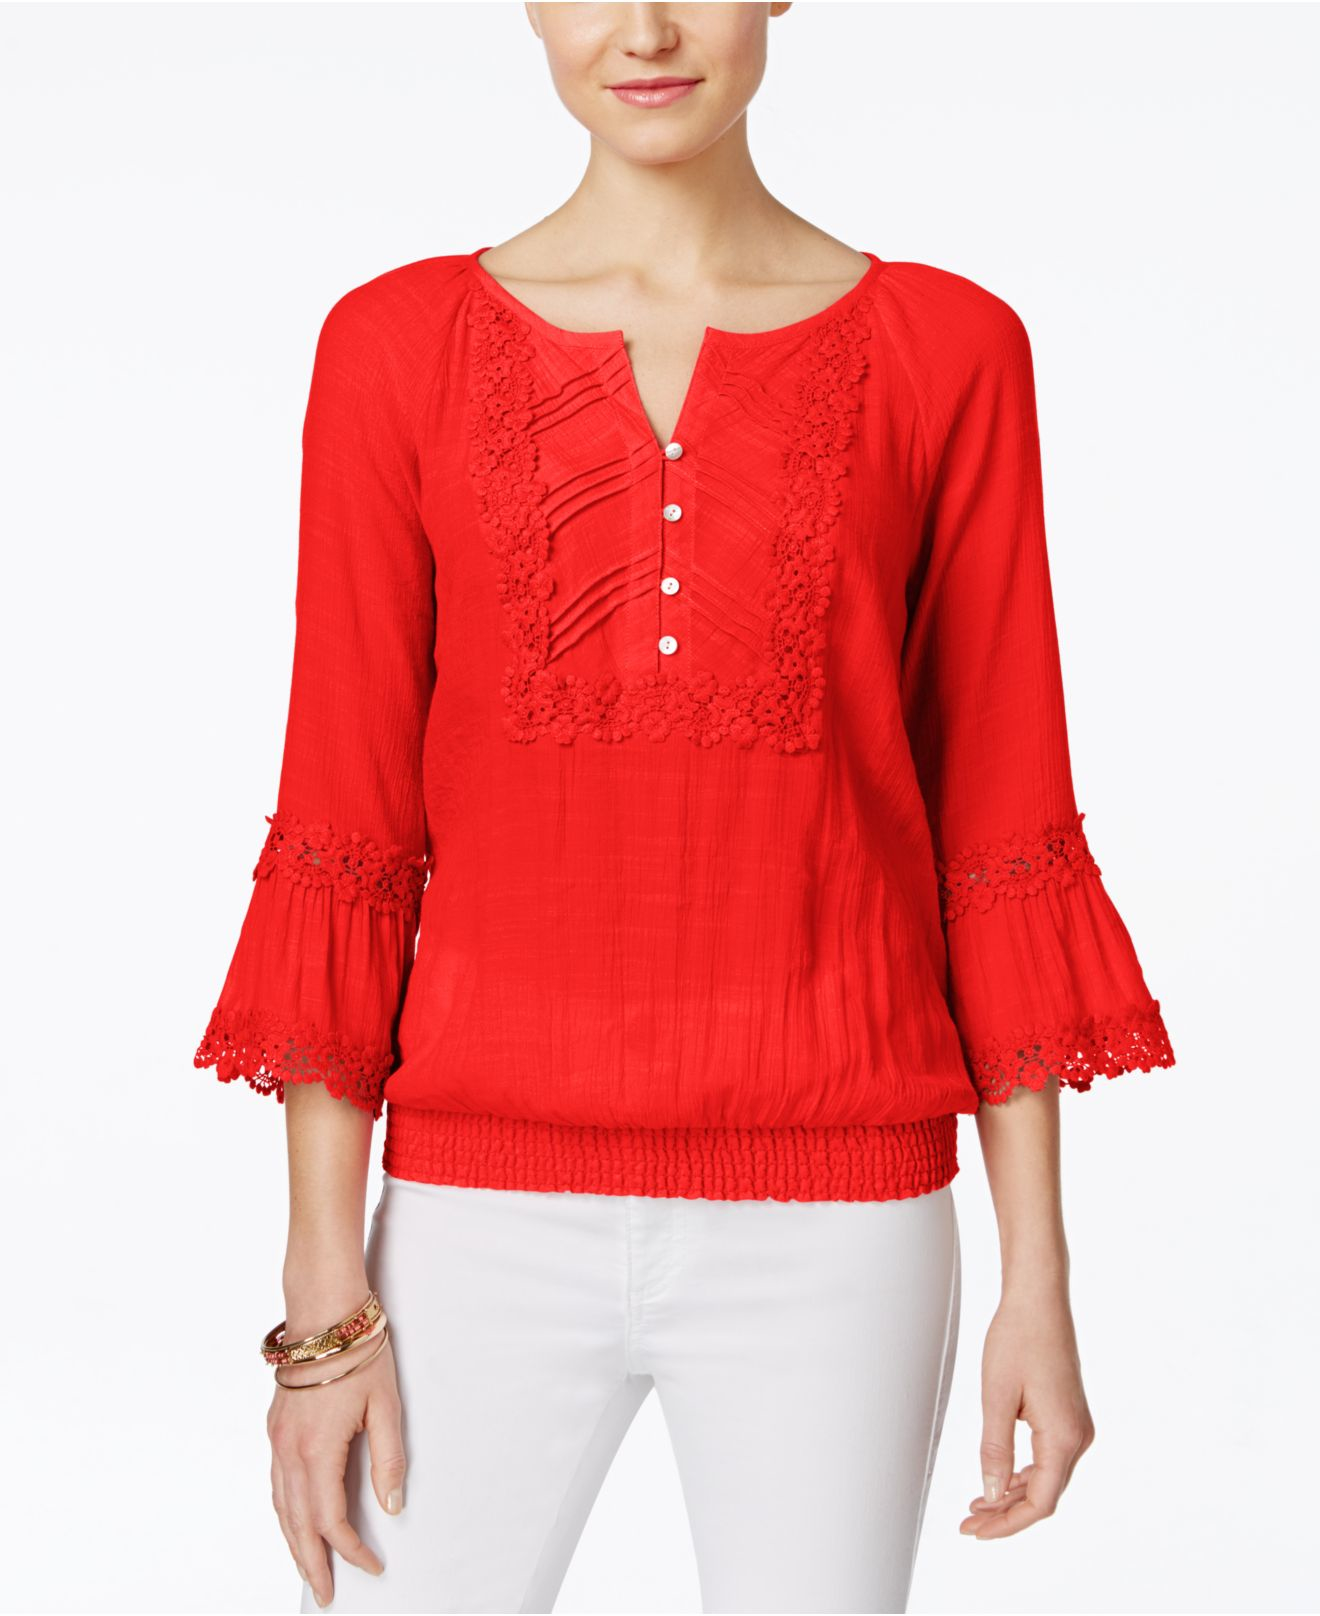 Theory Blouses